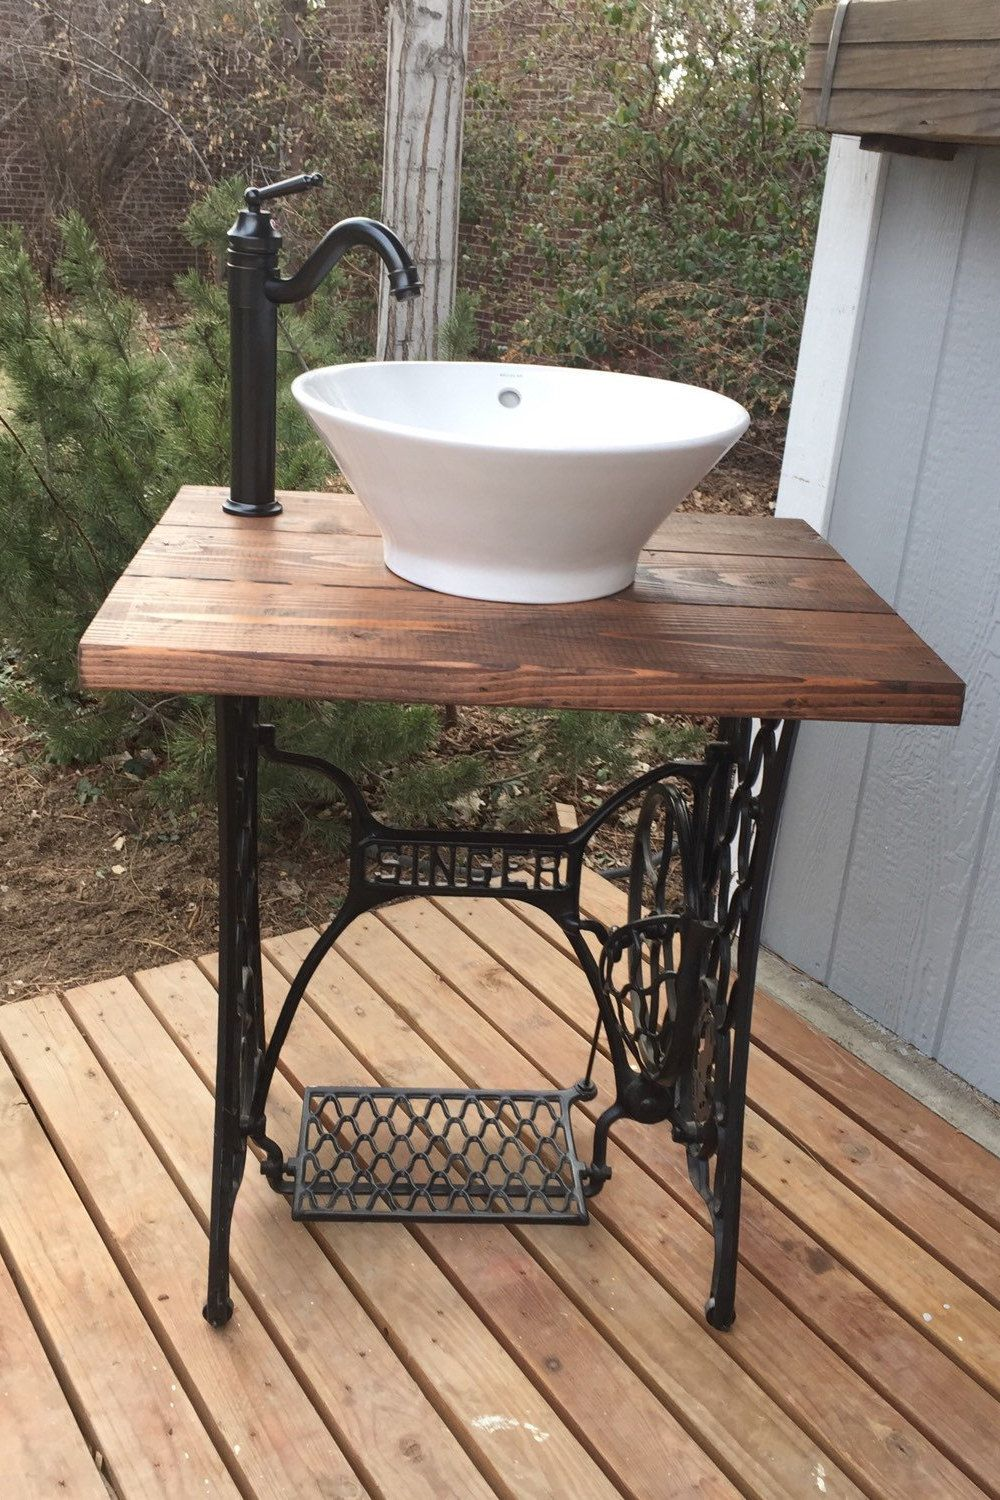 Vintage Upcycled Singer Sewing Machine Base Made Into Rustic